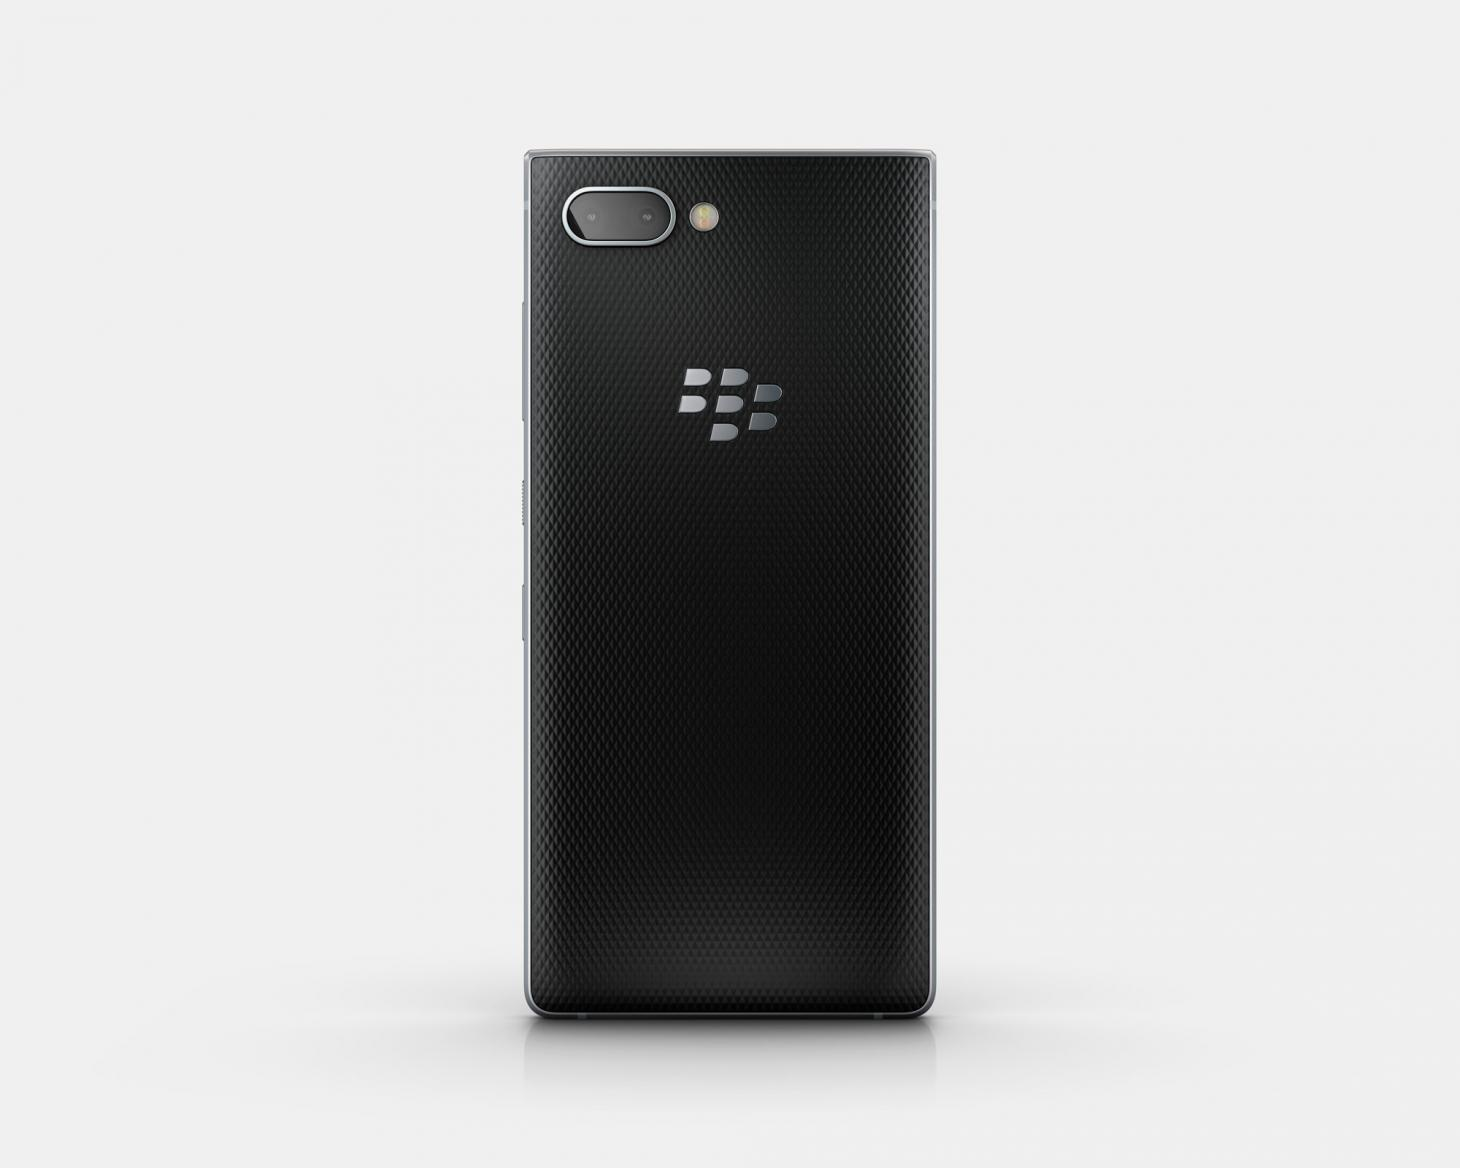 BlackBerry Key 2 Wallpapers: BlackBerry KEY2 Smartphone: All You Need To Know